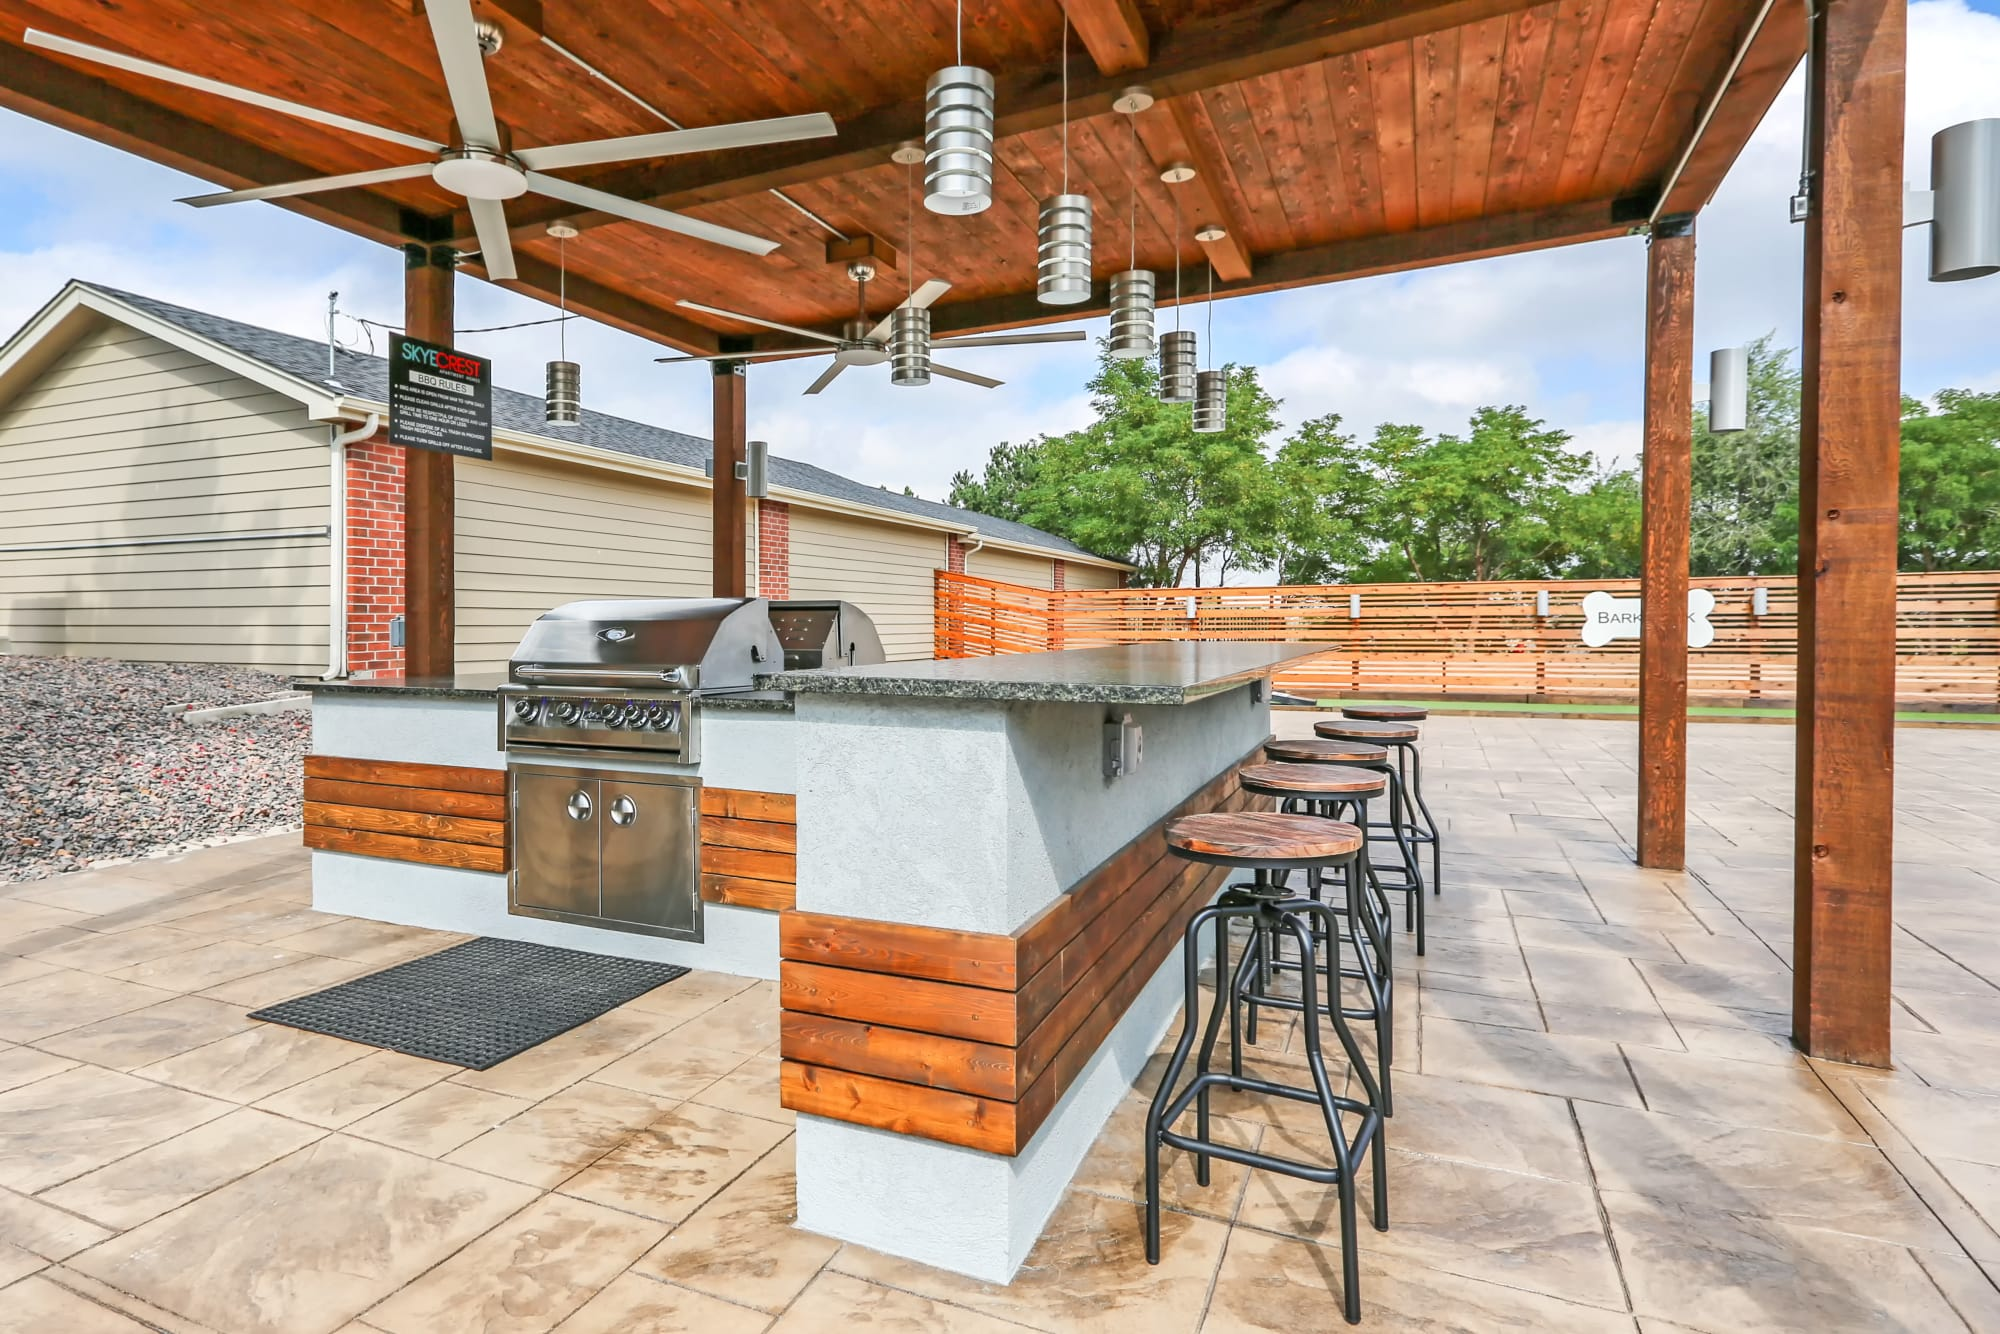 Covered BBQ with bar top seating at Skyecrest Apartments in Lakewood, Colorado